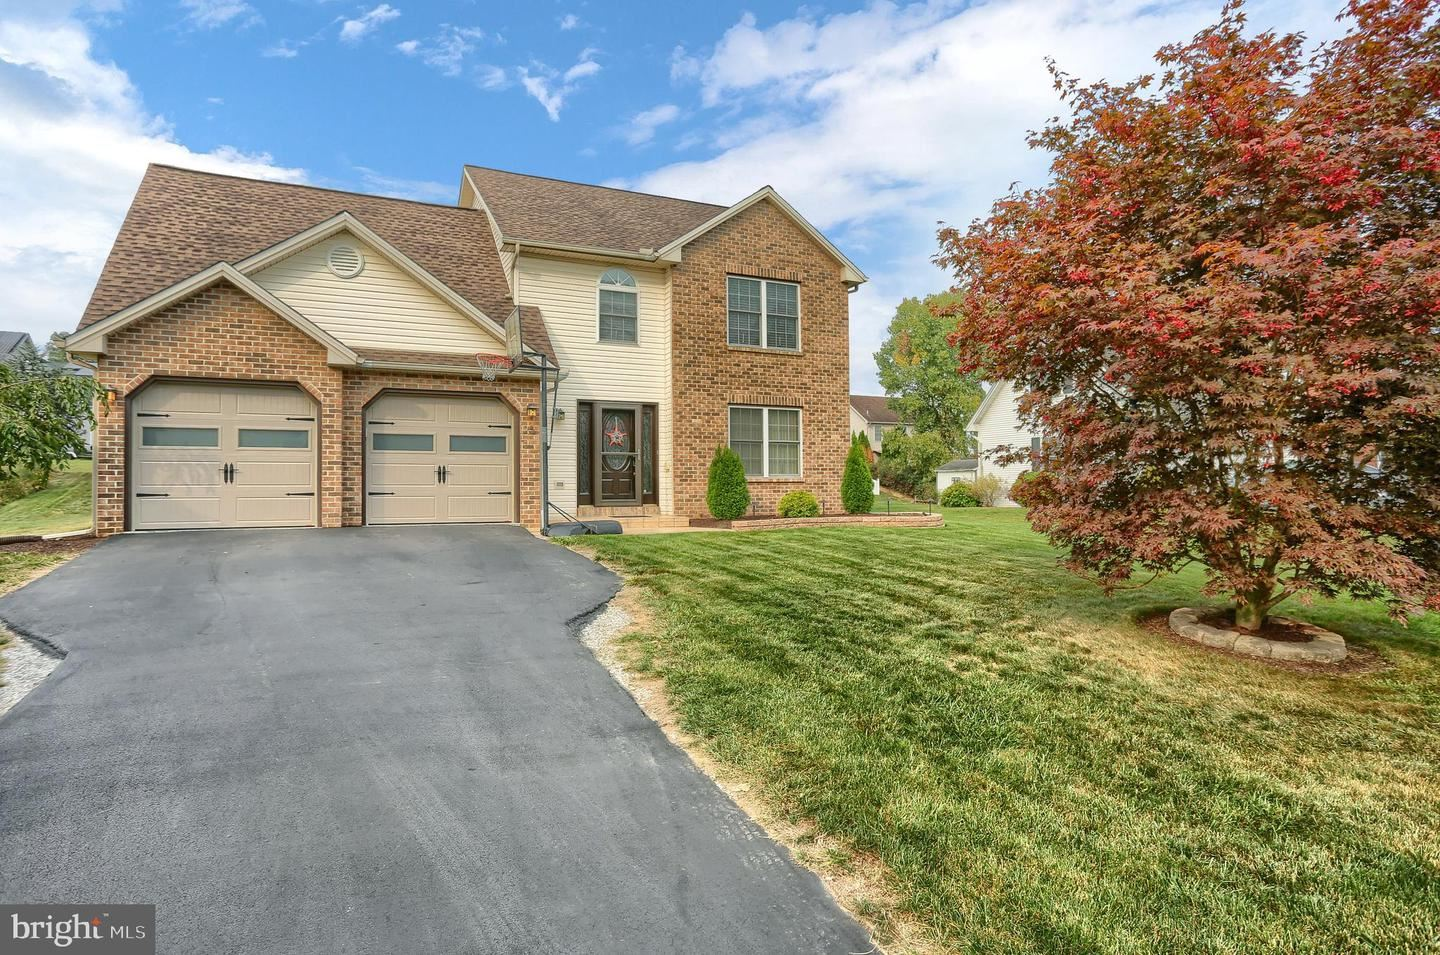 Photo of 25 WOODVIEW DR, MOUNT HOLLY SPRINGS, PA 17065 (MLS # PACB128760)